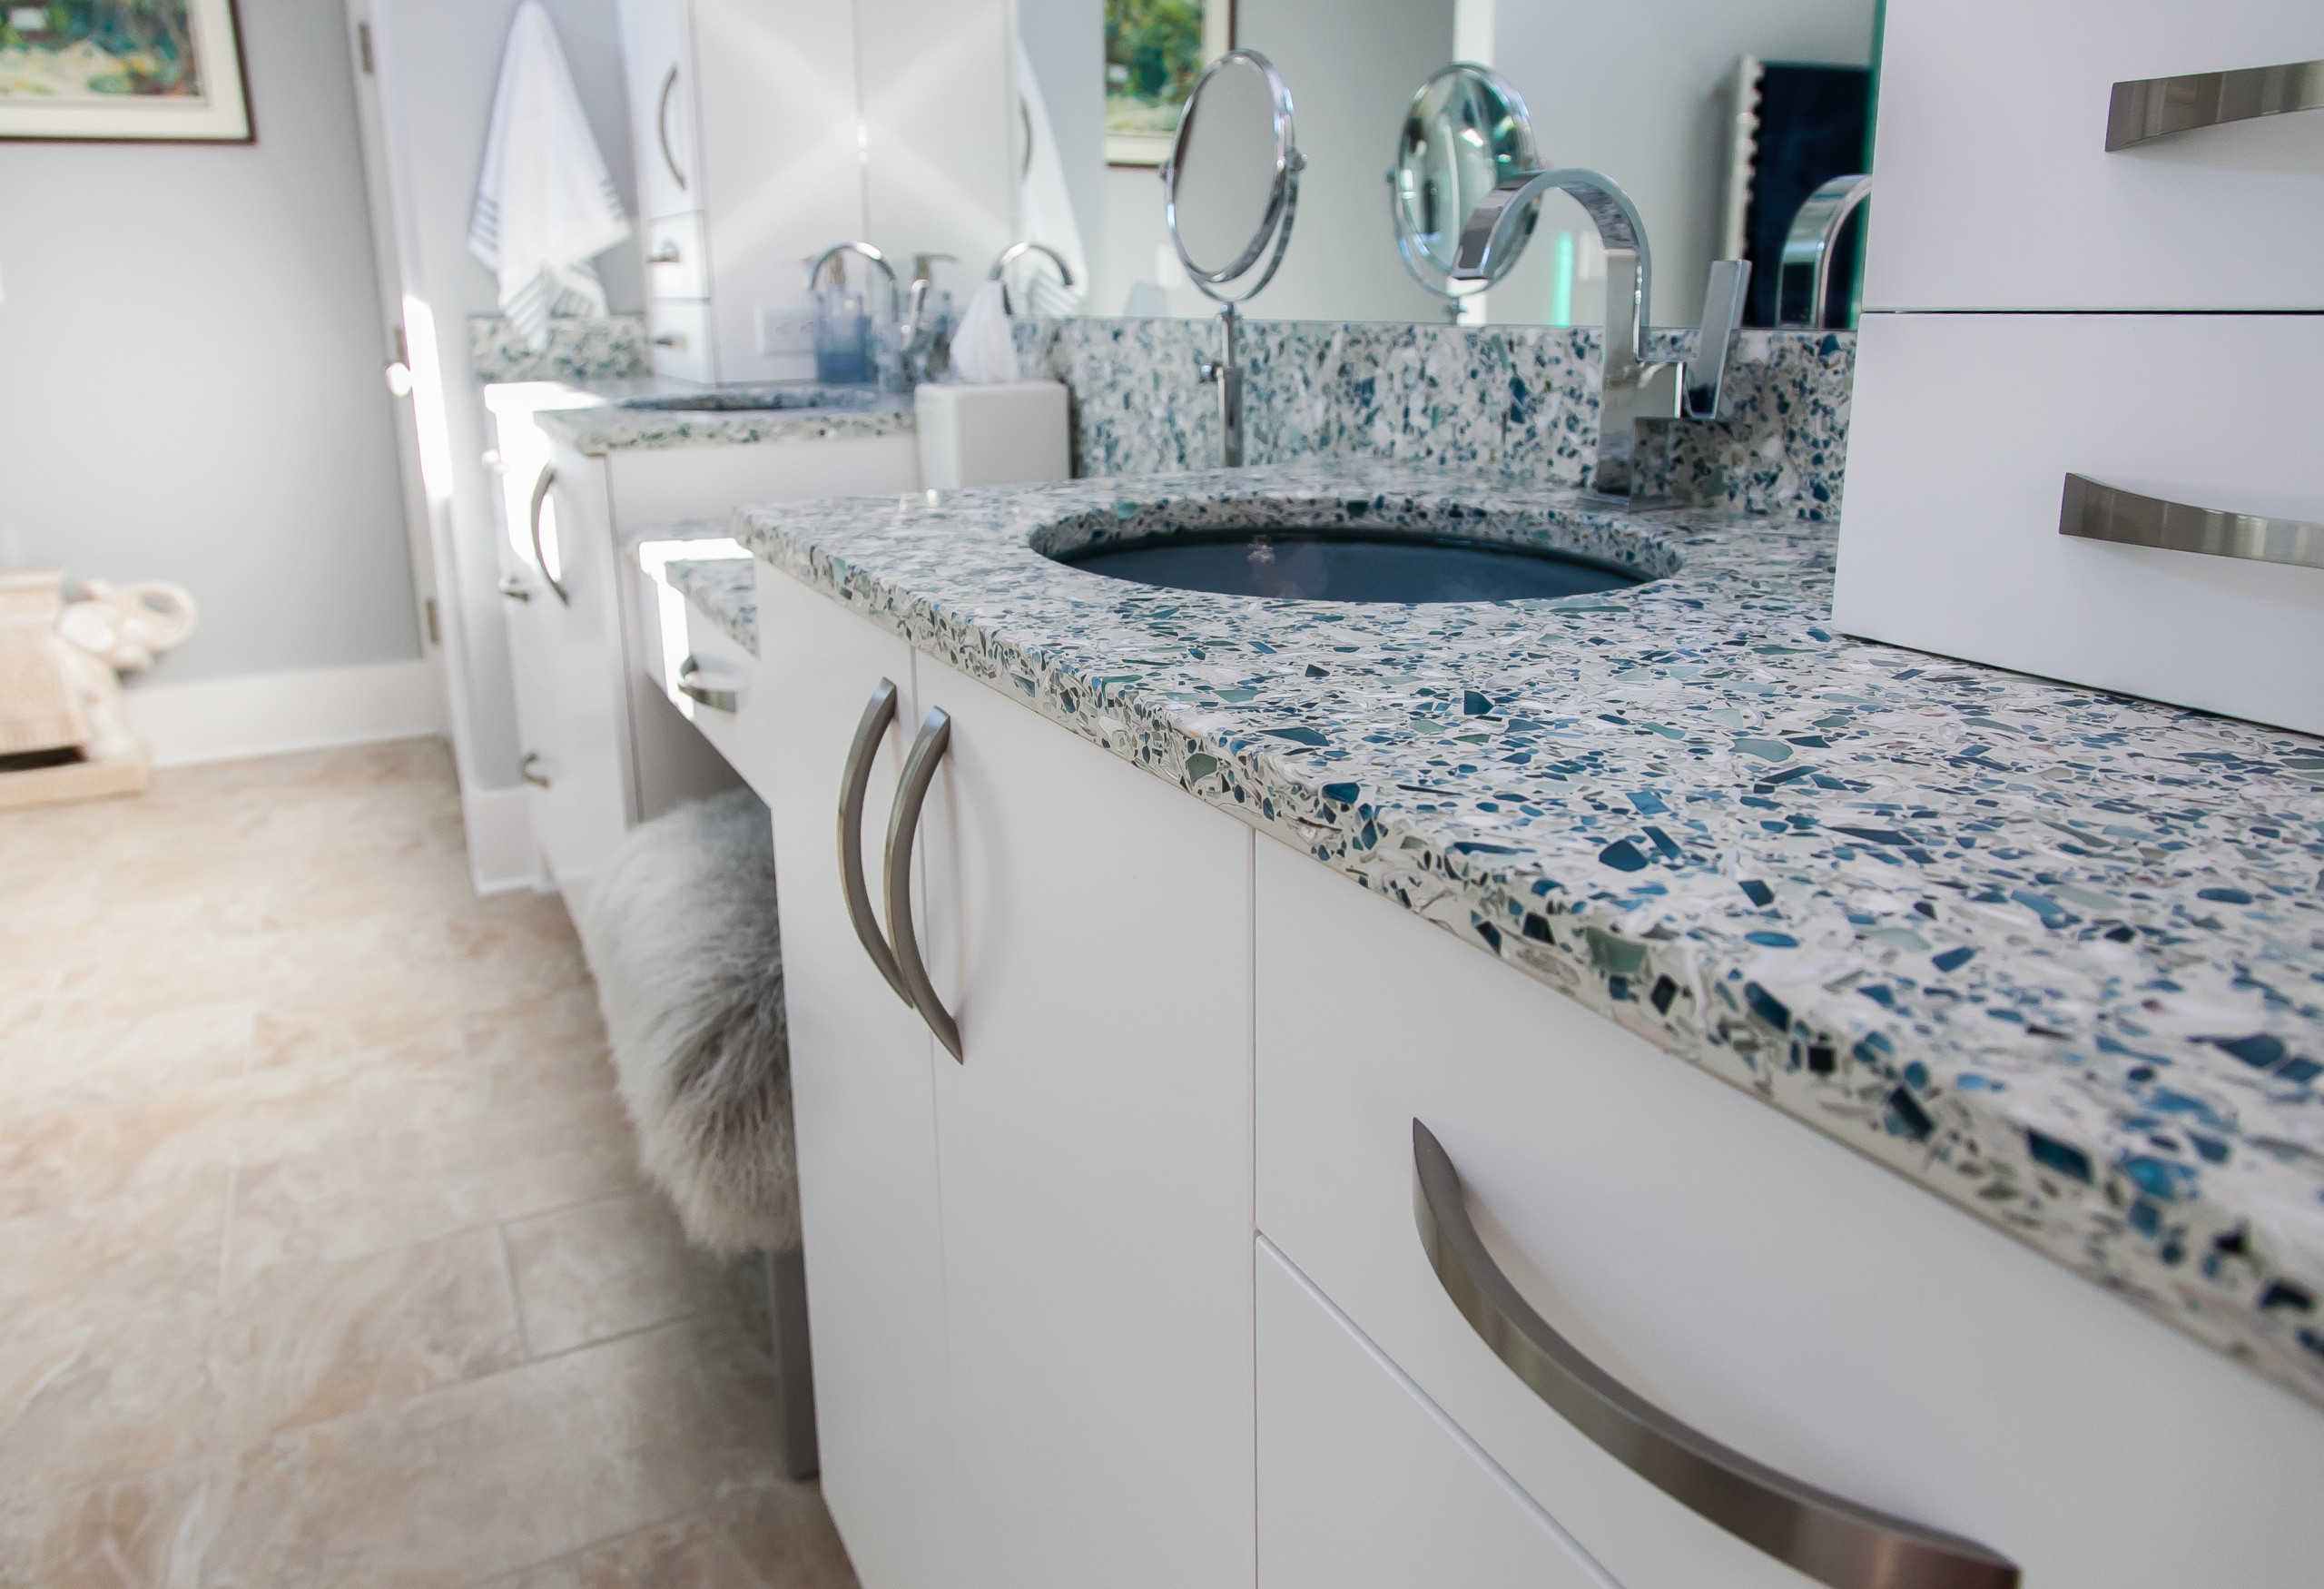 75 Beautiful Ceramic Tile Bathroom With Recycled Glass Countertops Pictures Ideas January 2021 Houzz